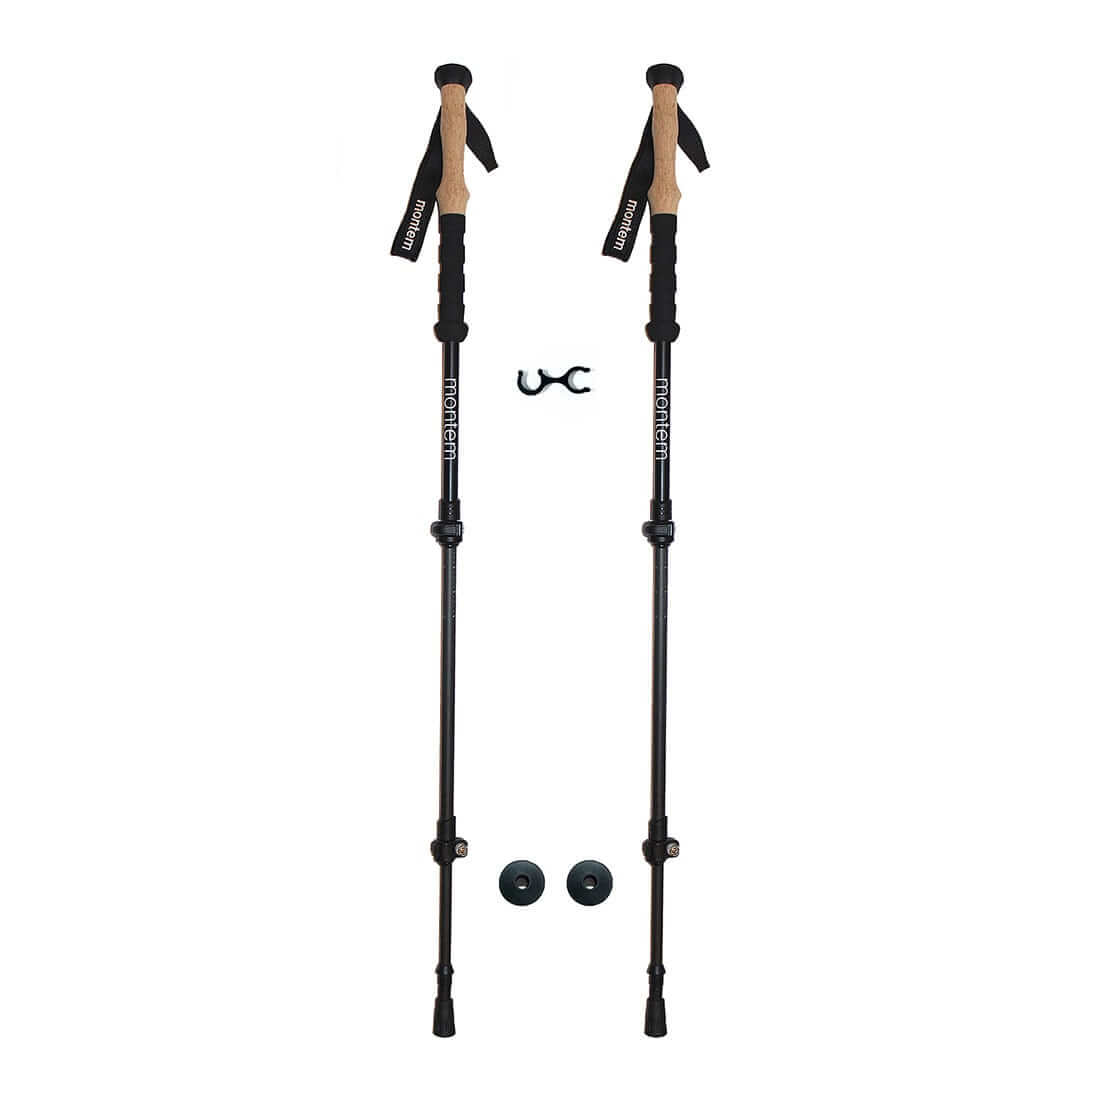 Ultra Light 100 Carbon Fiber Trekking Poles